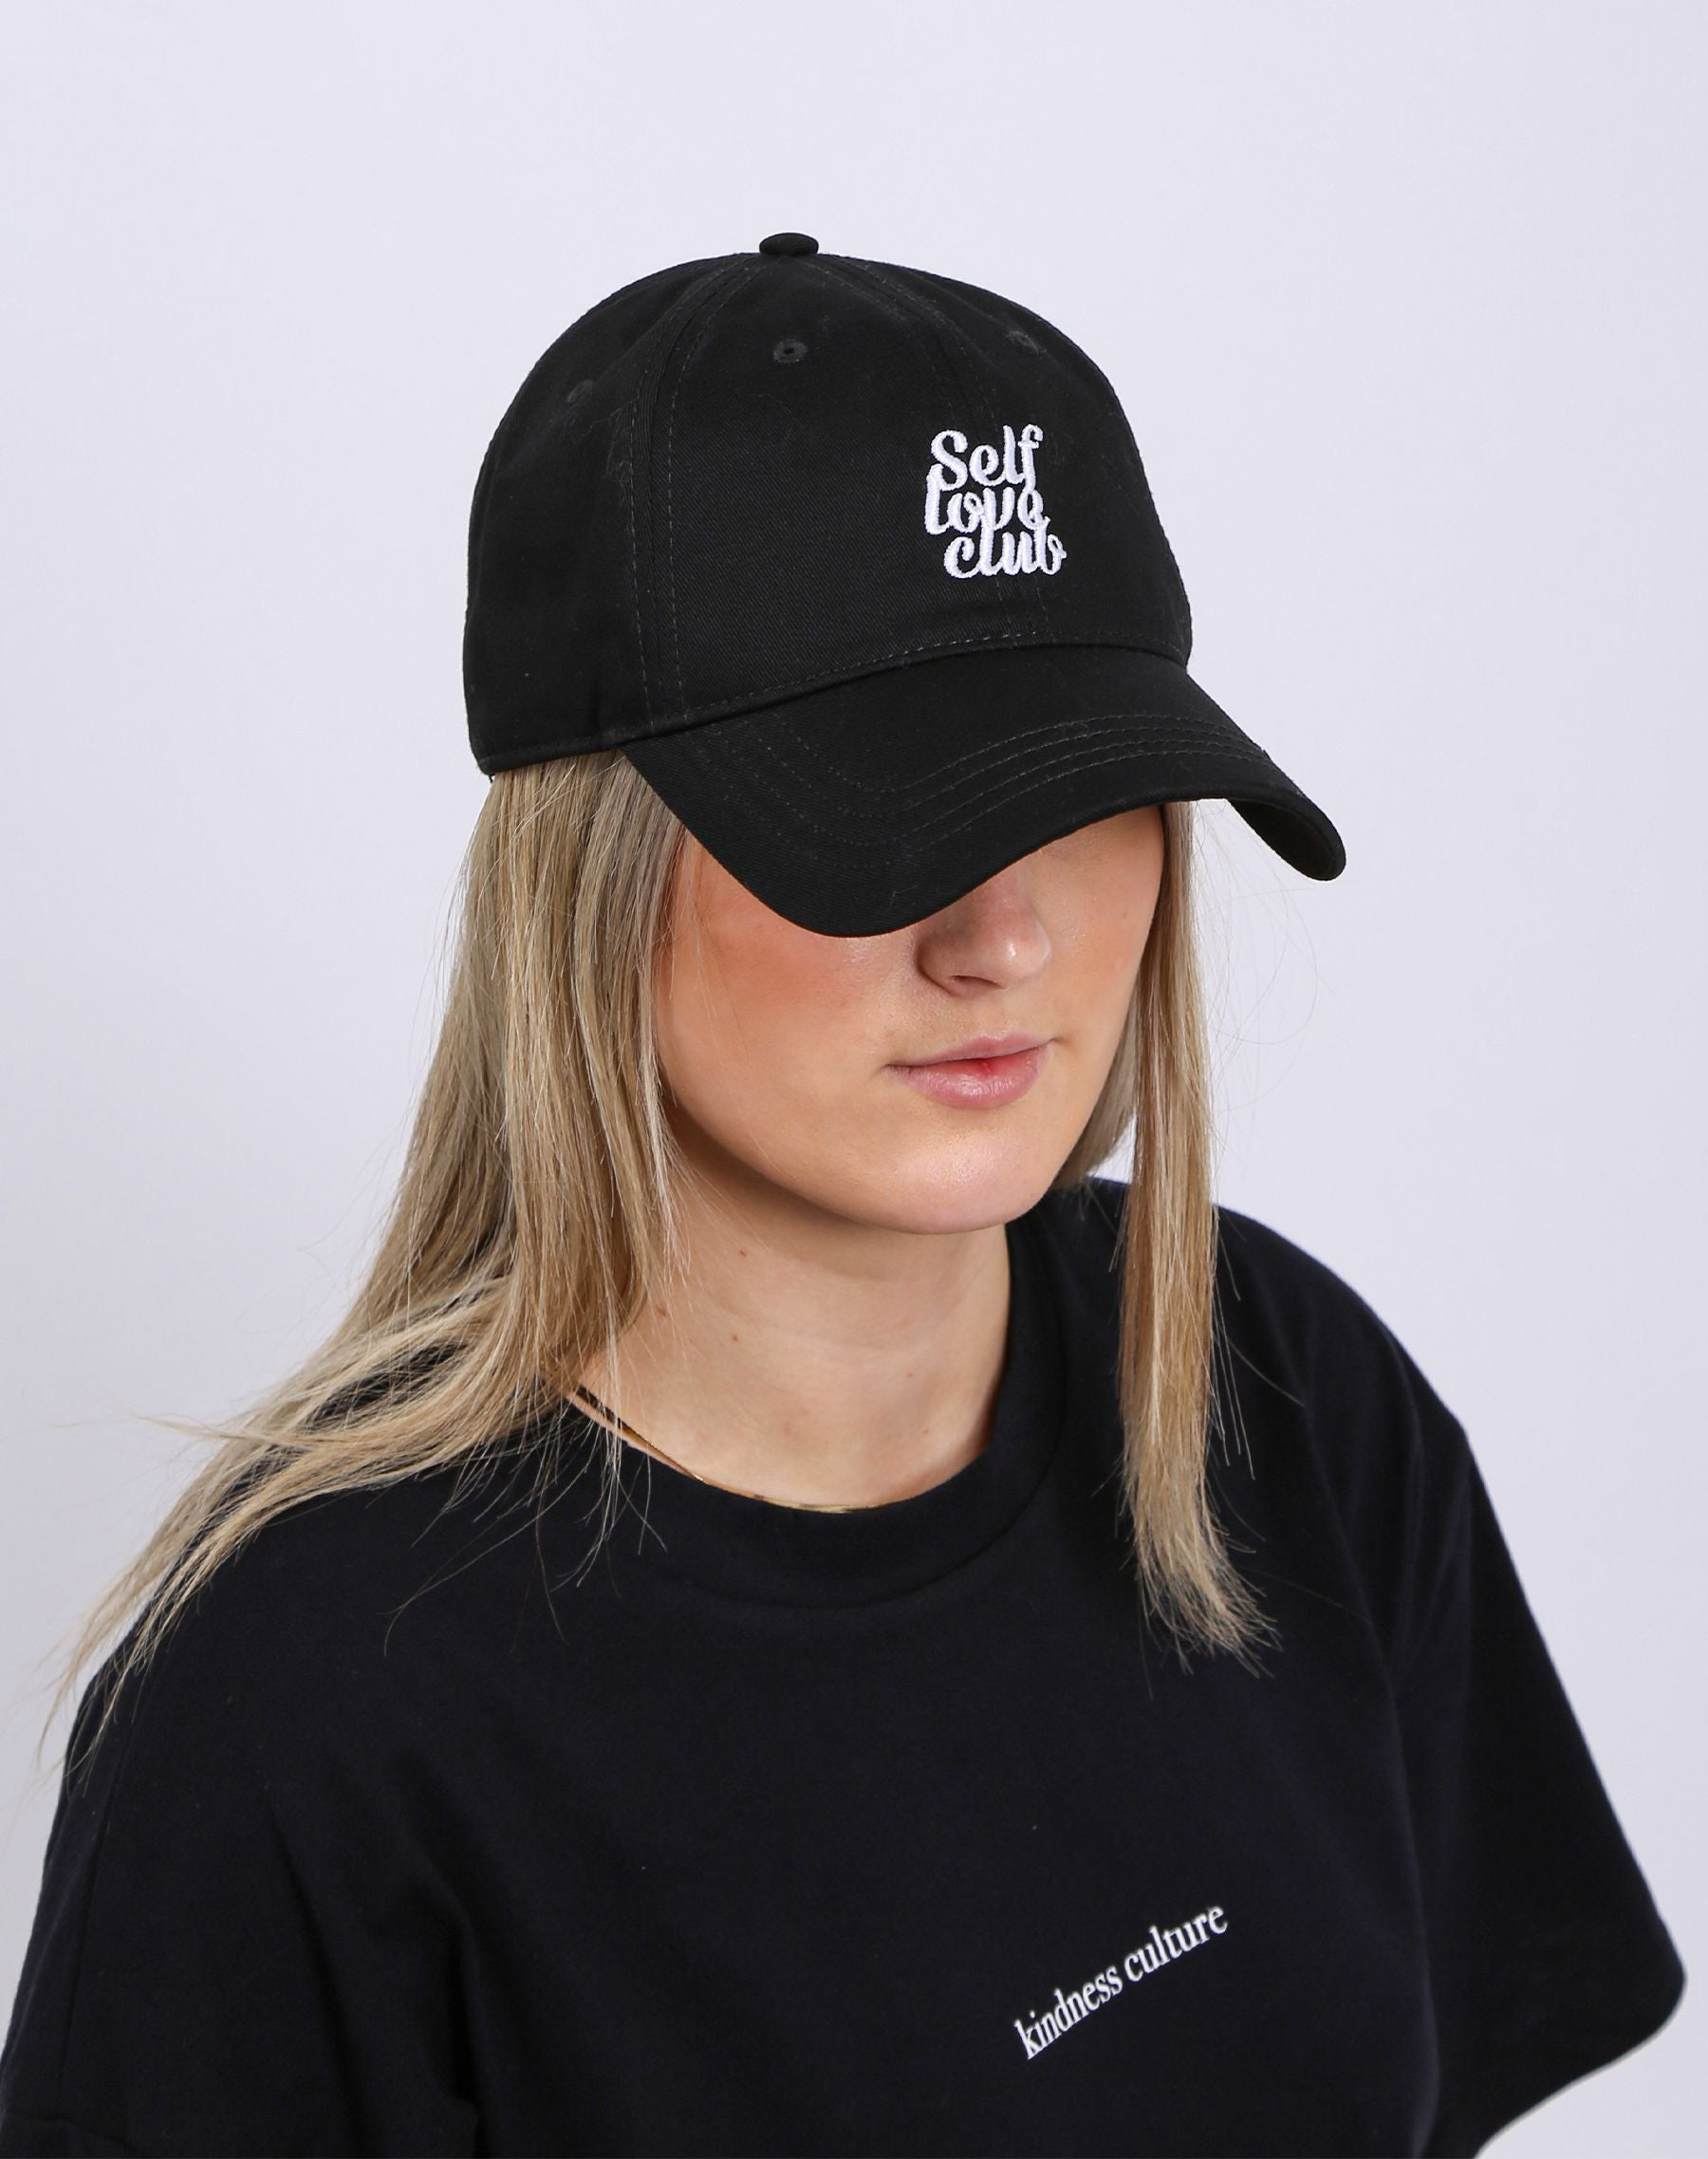 This is a photo of a model wearing the self love club baseball cap in black.